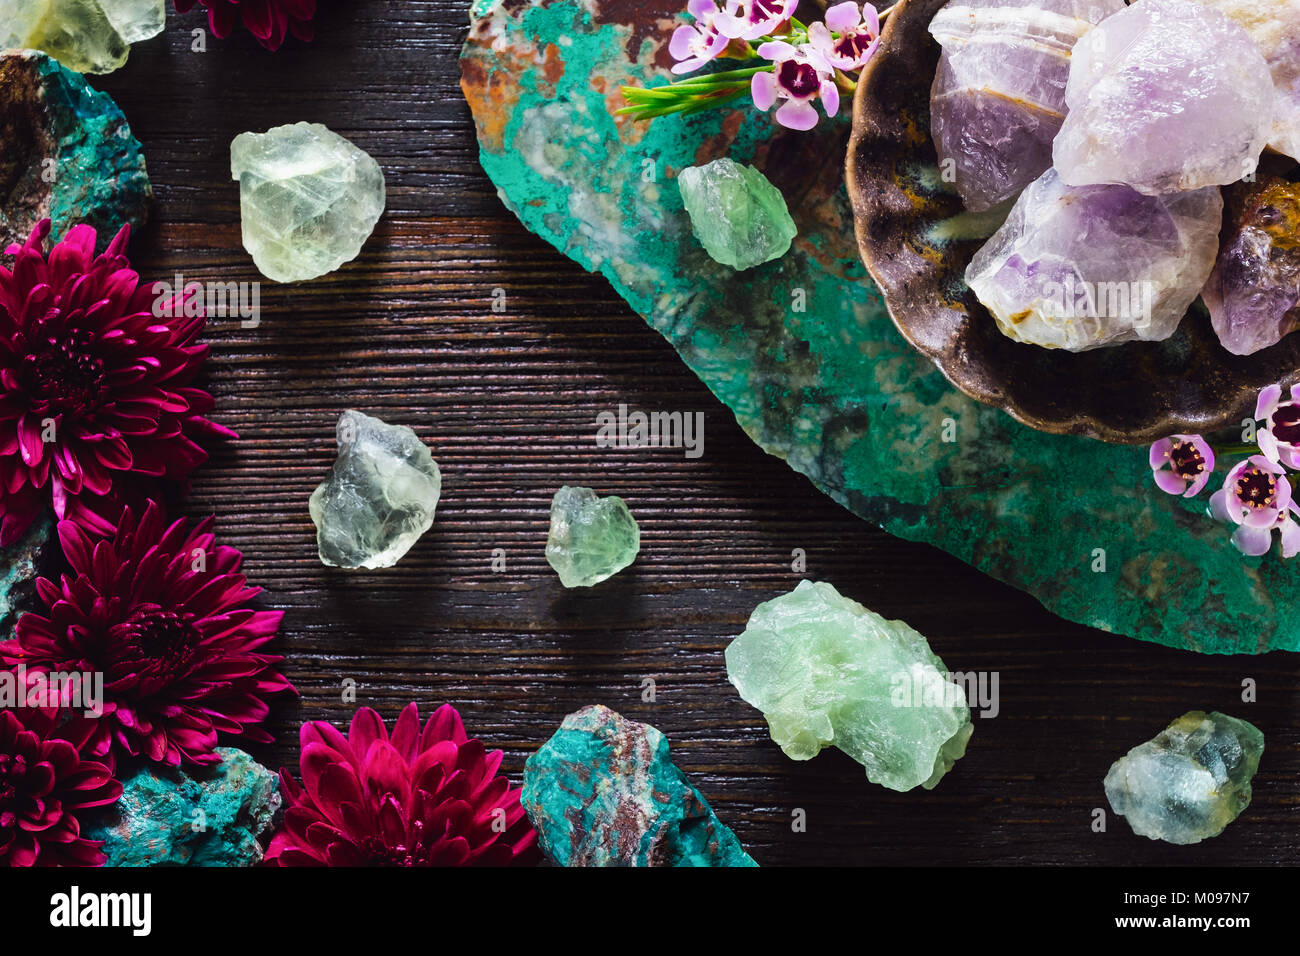 Rough Amethyst, Fluorite and Turquoise with Mixed Flowers on Dark Table Stock Photo